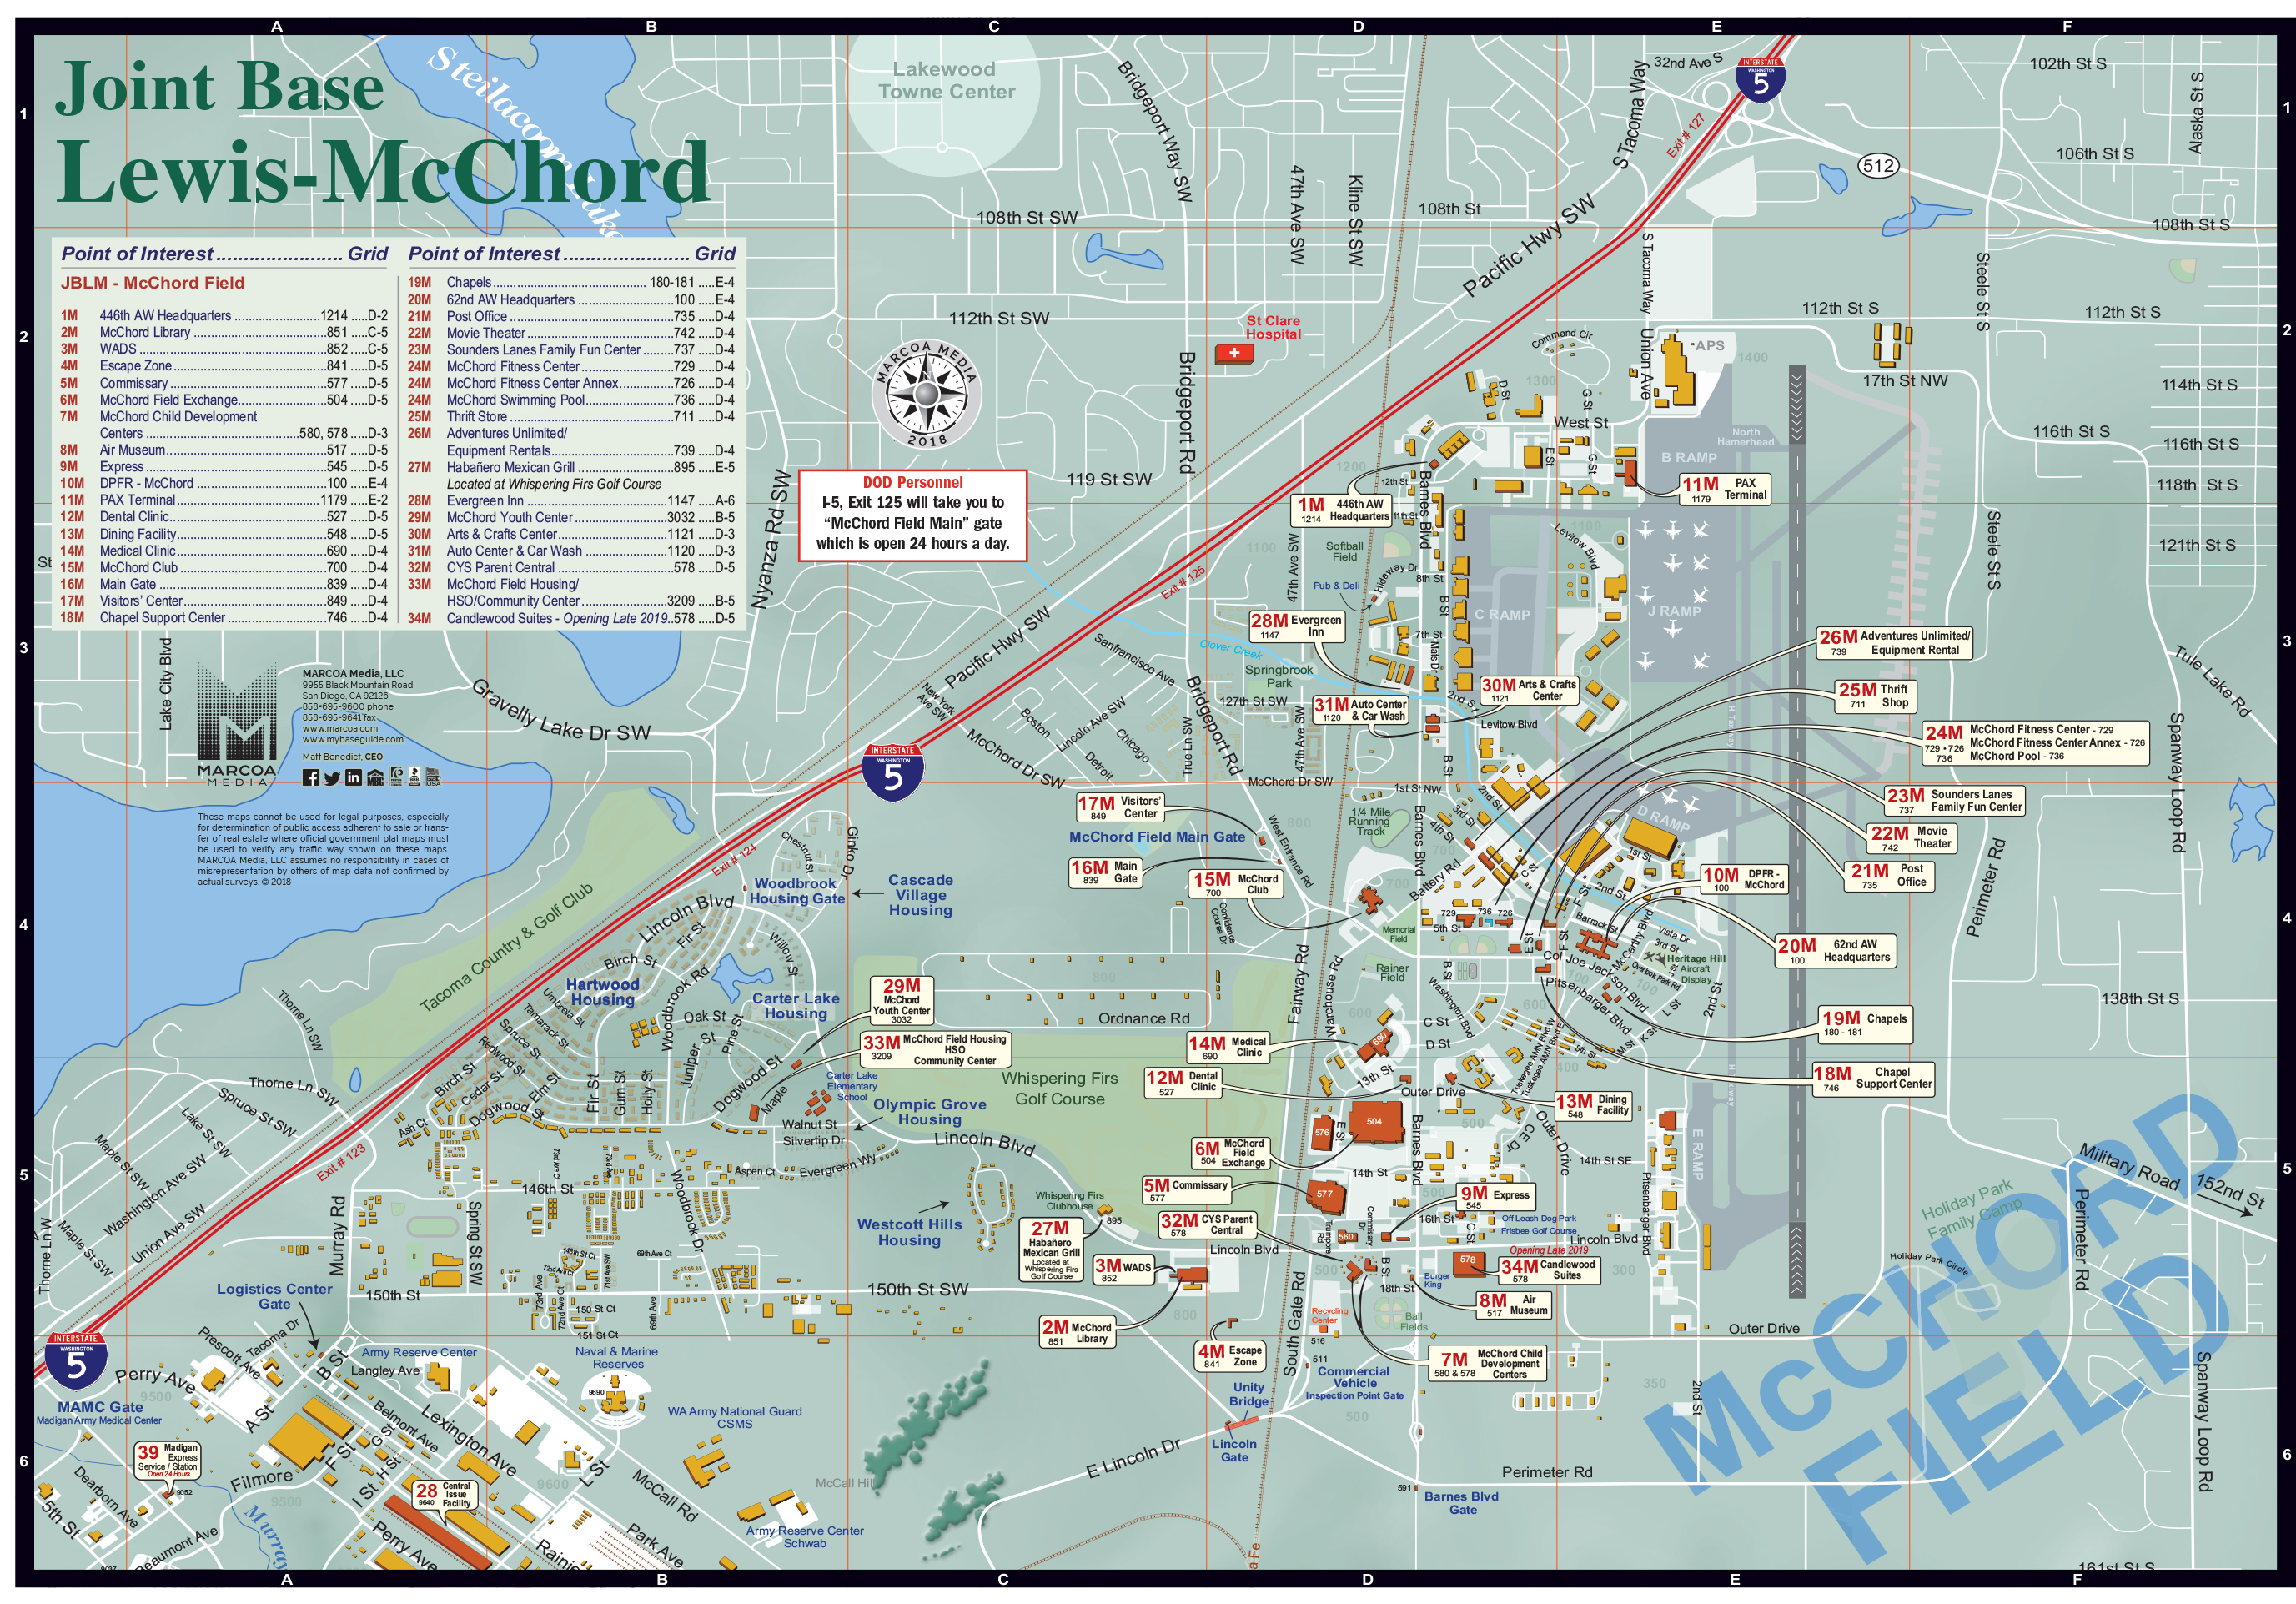 JB_Lewis-McChord_Map_2019-McChord-Field.jpg